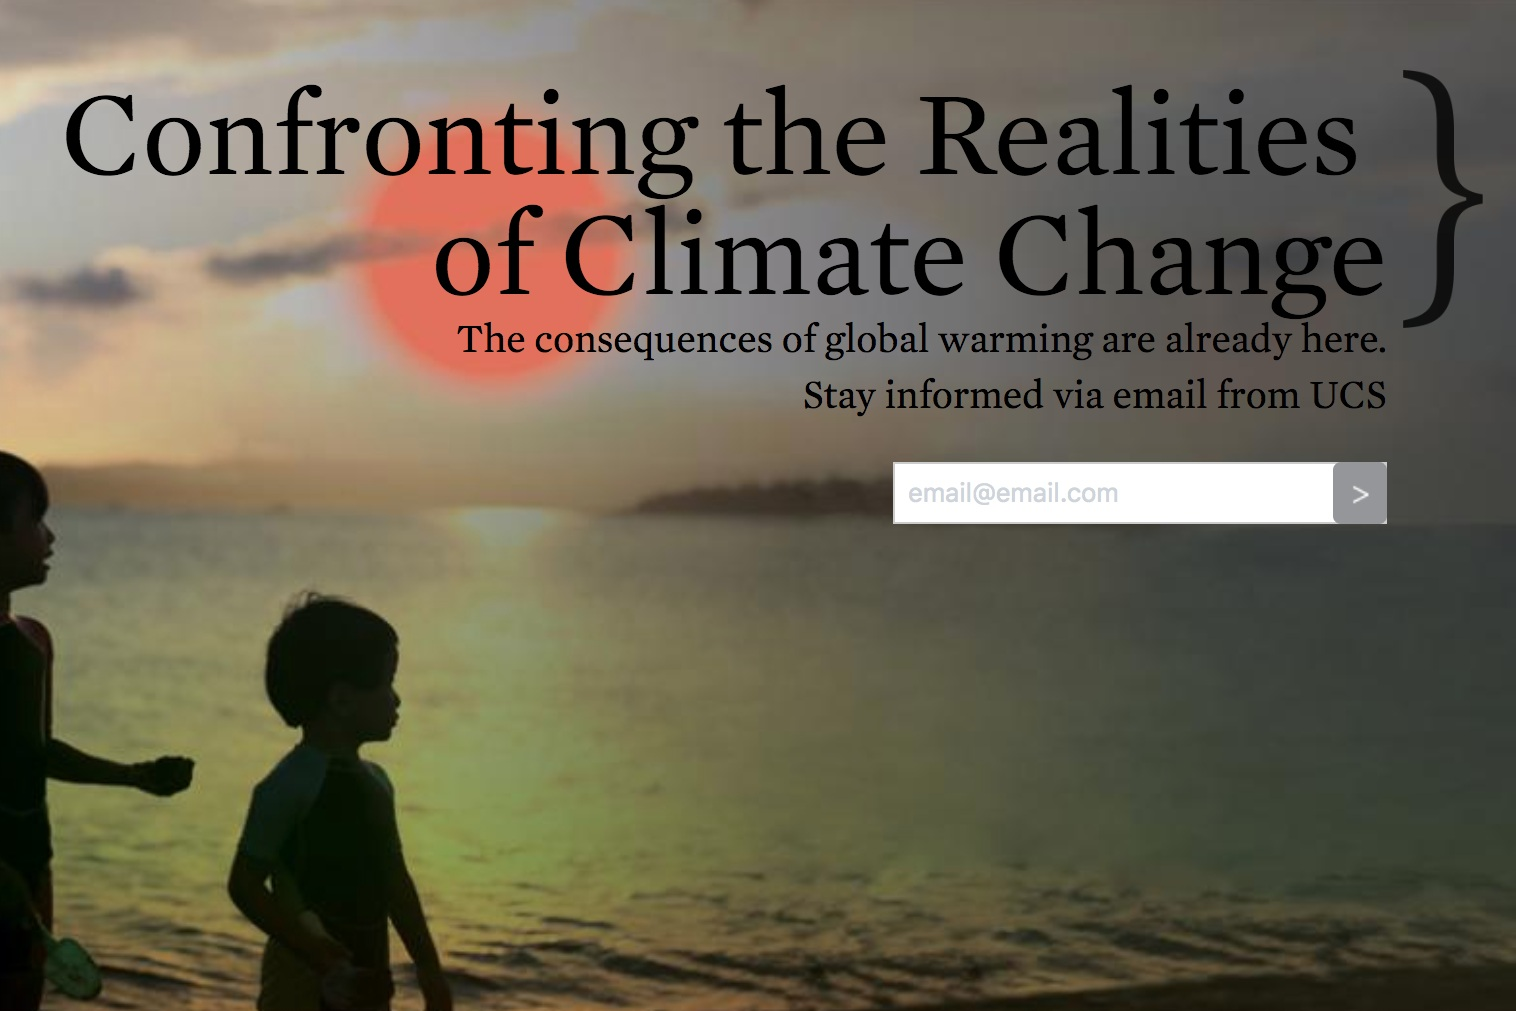 - Union of Concerned Scientists' Global Warming Webpage